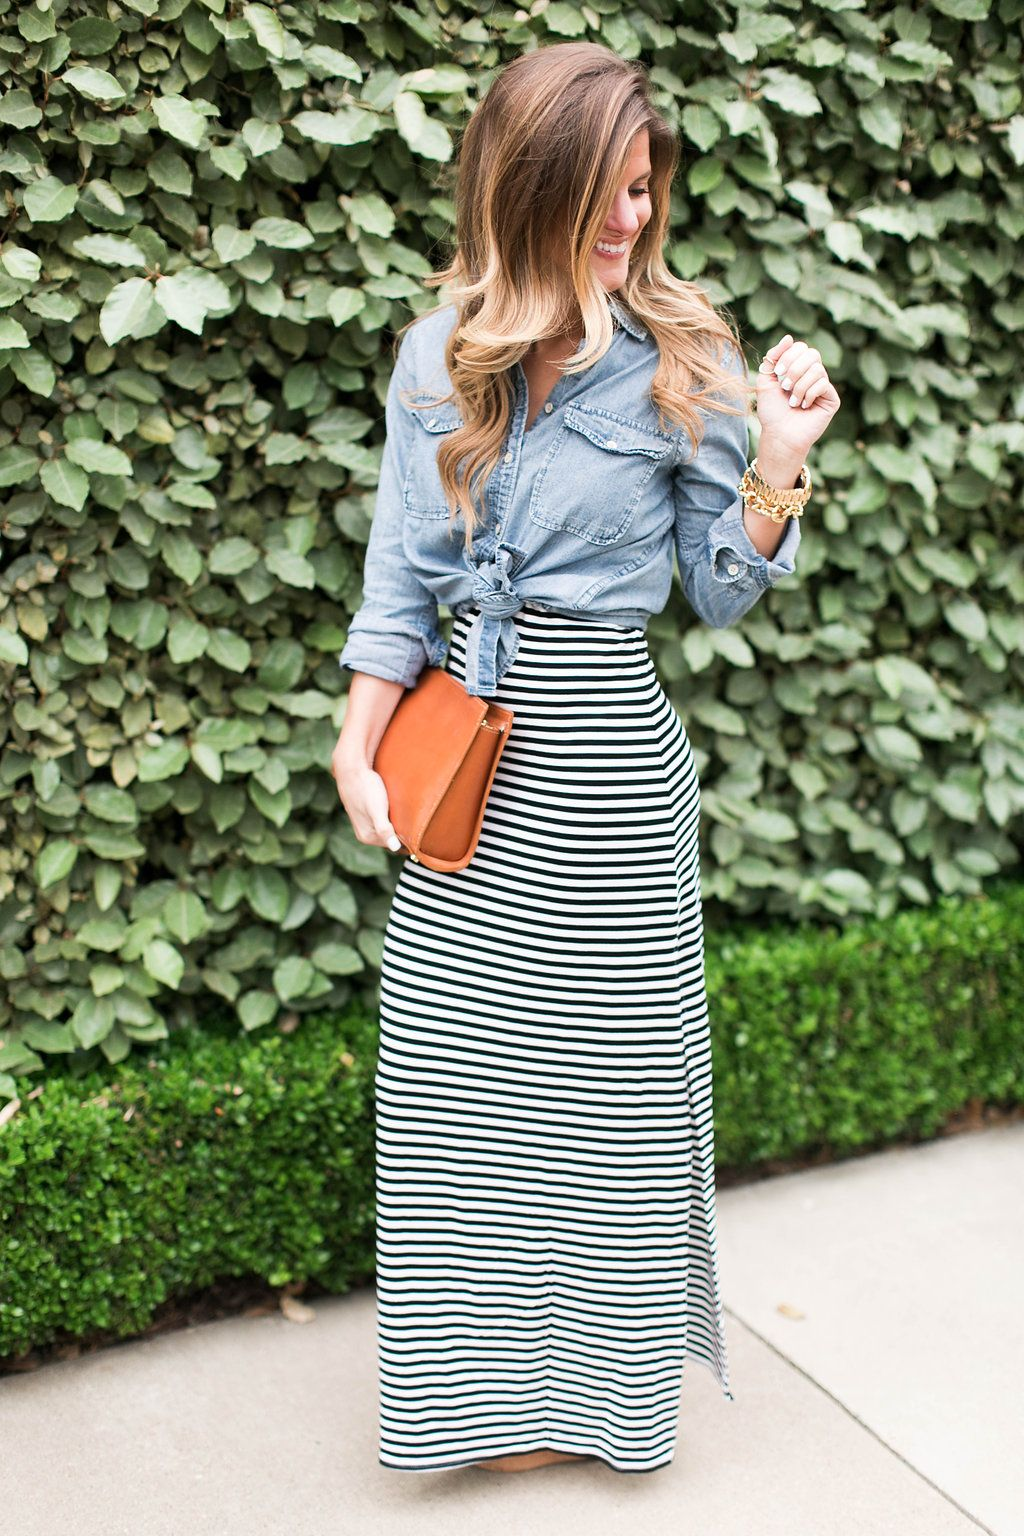 bd972368555 How to Wear a Denim Shirt    13+ ways to style your favorite denim shirt     striped maxi dress + chambray shirt on top tied up + gigi NY Cognac leather  ...